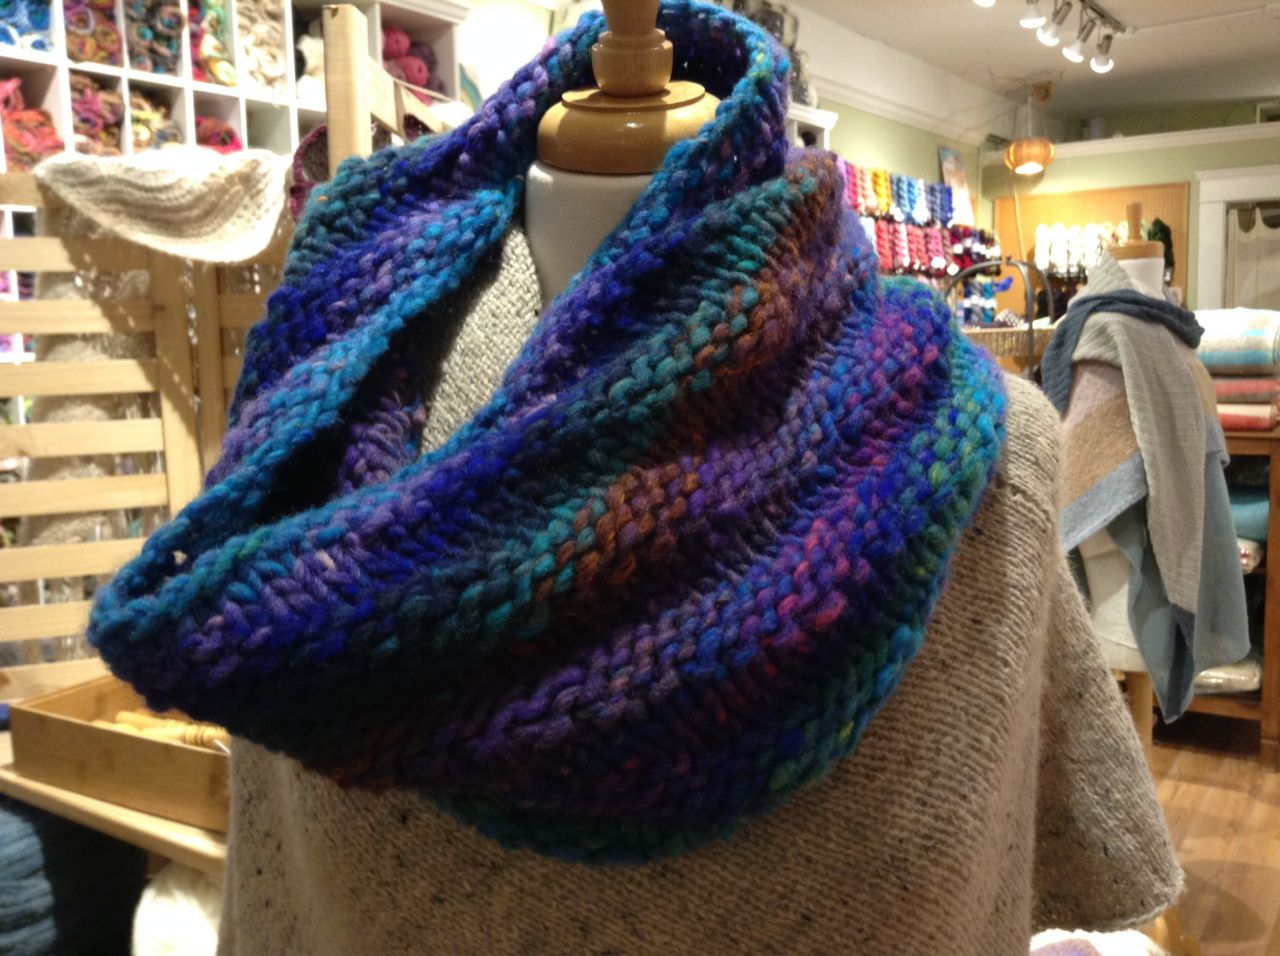 Squishy Soft Cowl in Kureyon Air